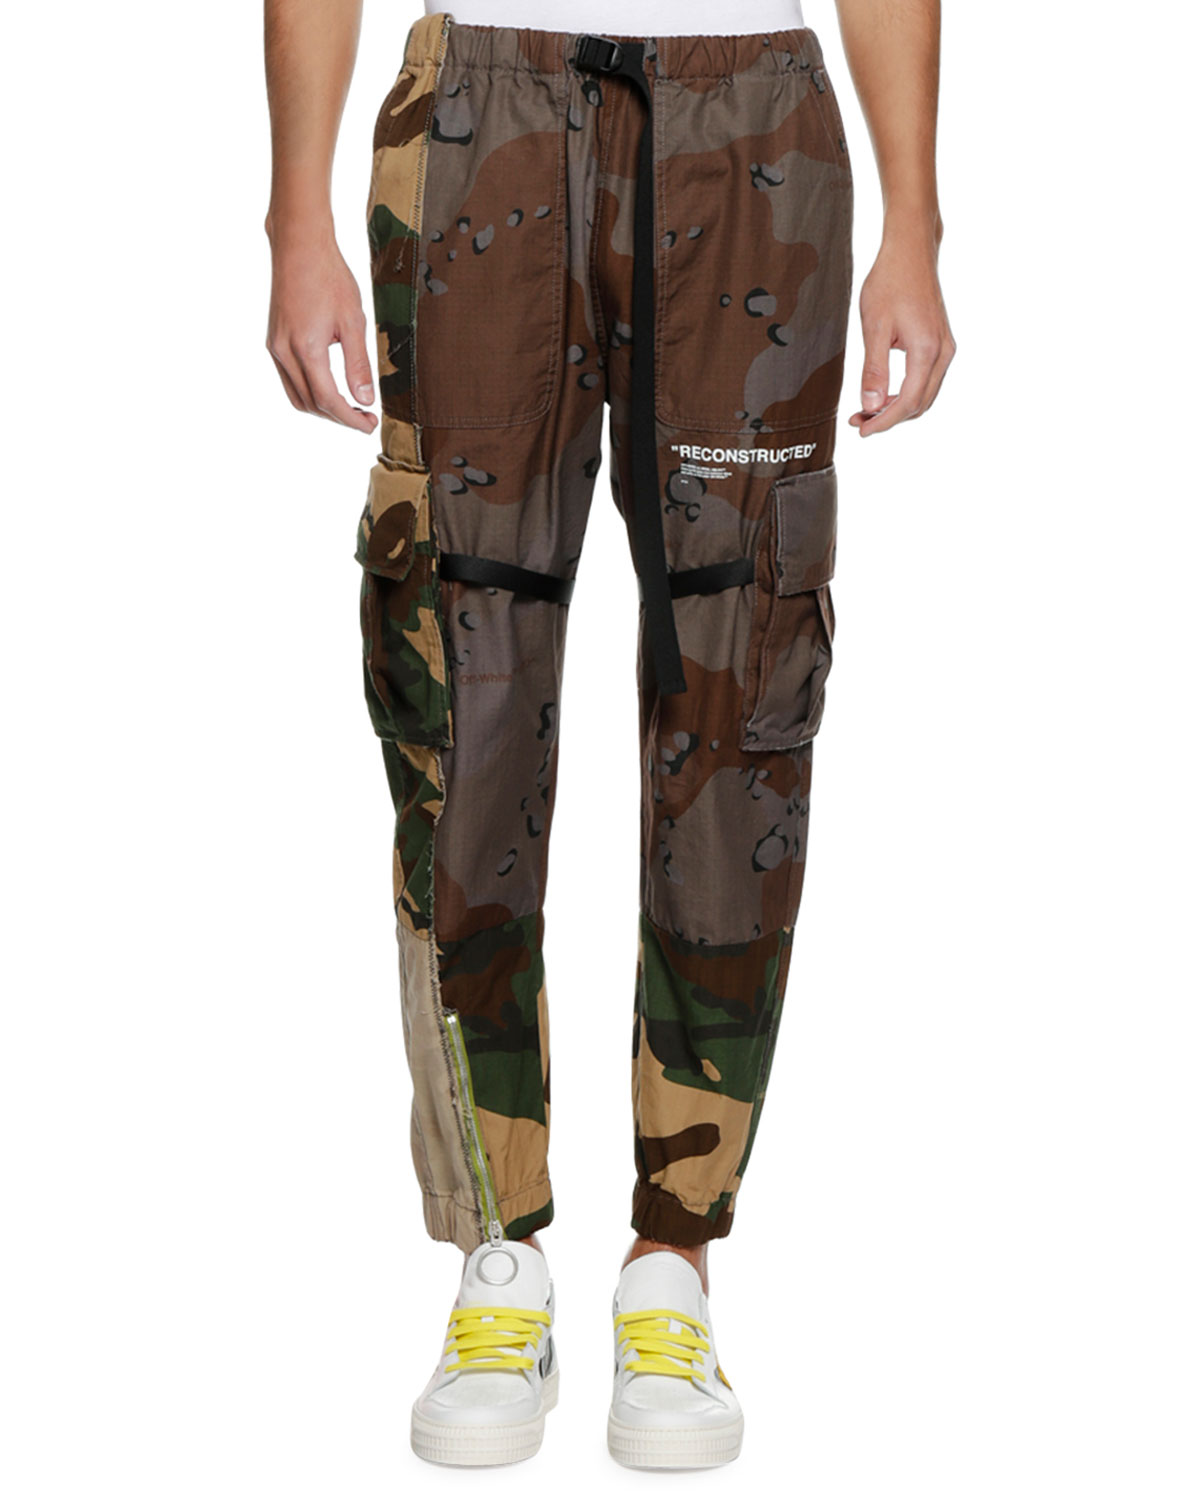 Men's Reconstructed Camo-Print Cargo Pants